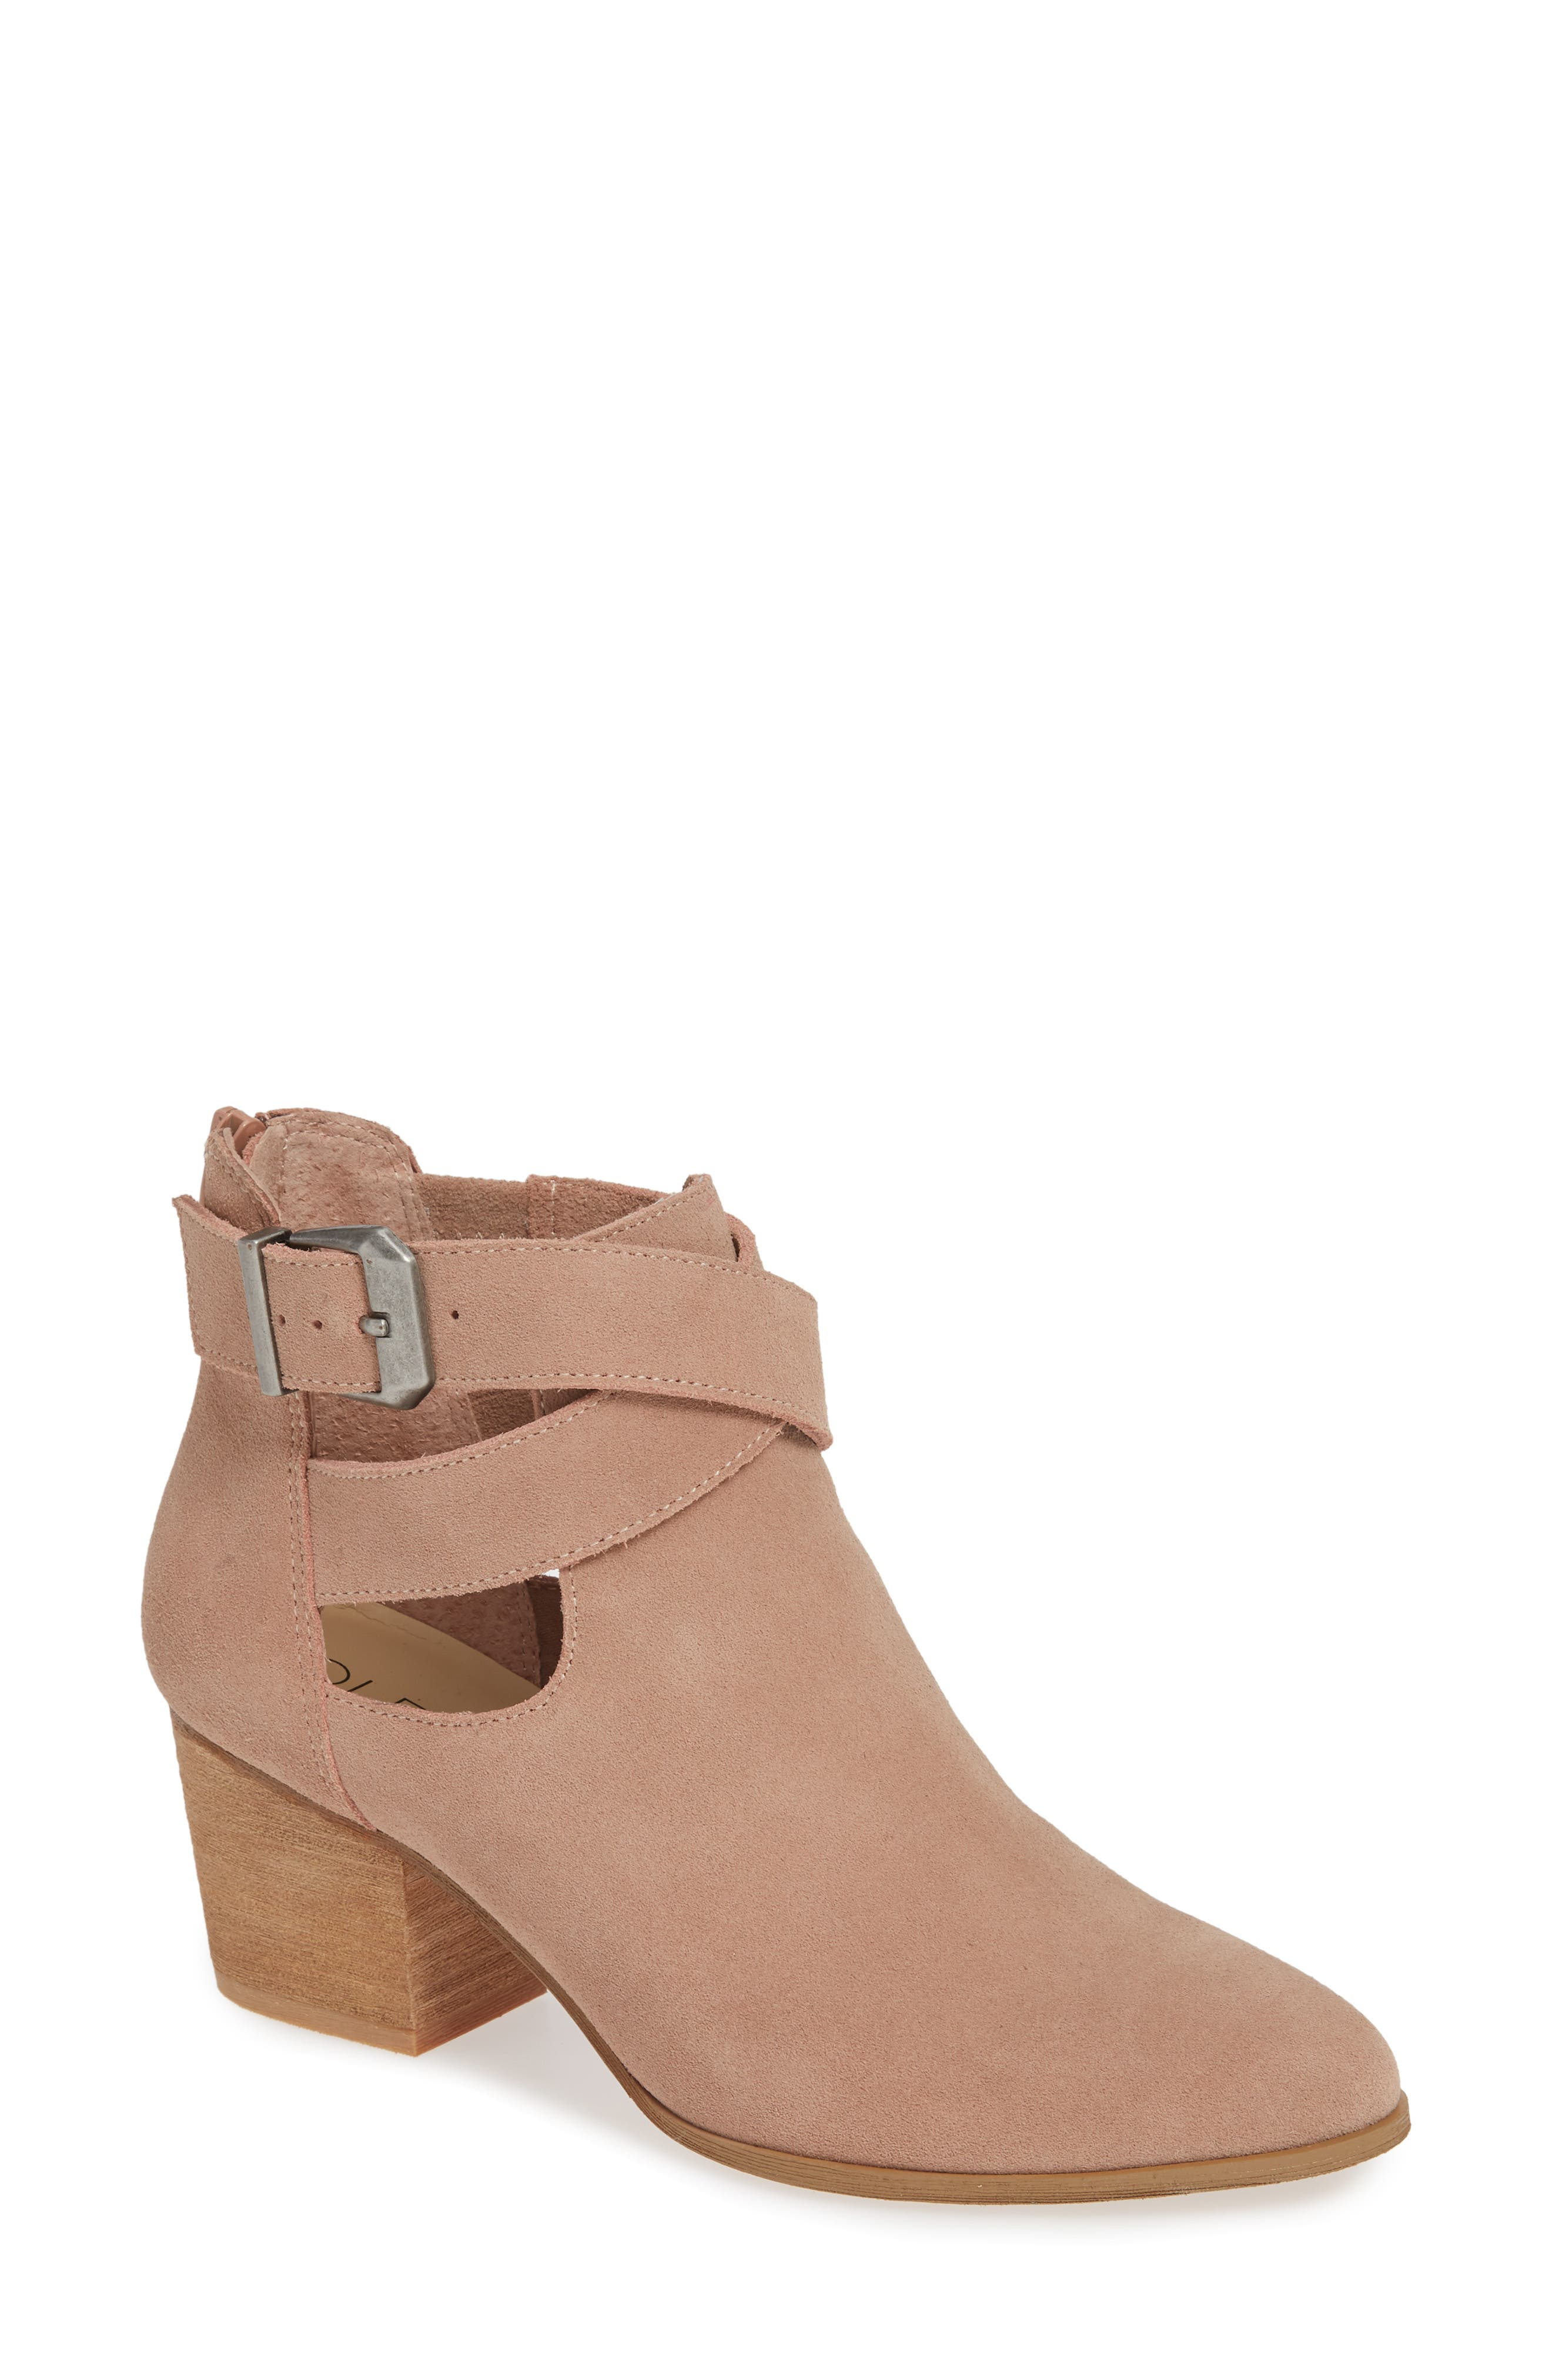 Azure Bootie,                         Main,                         color, DUSTY ROSE SUEDE